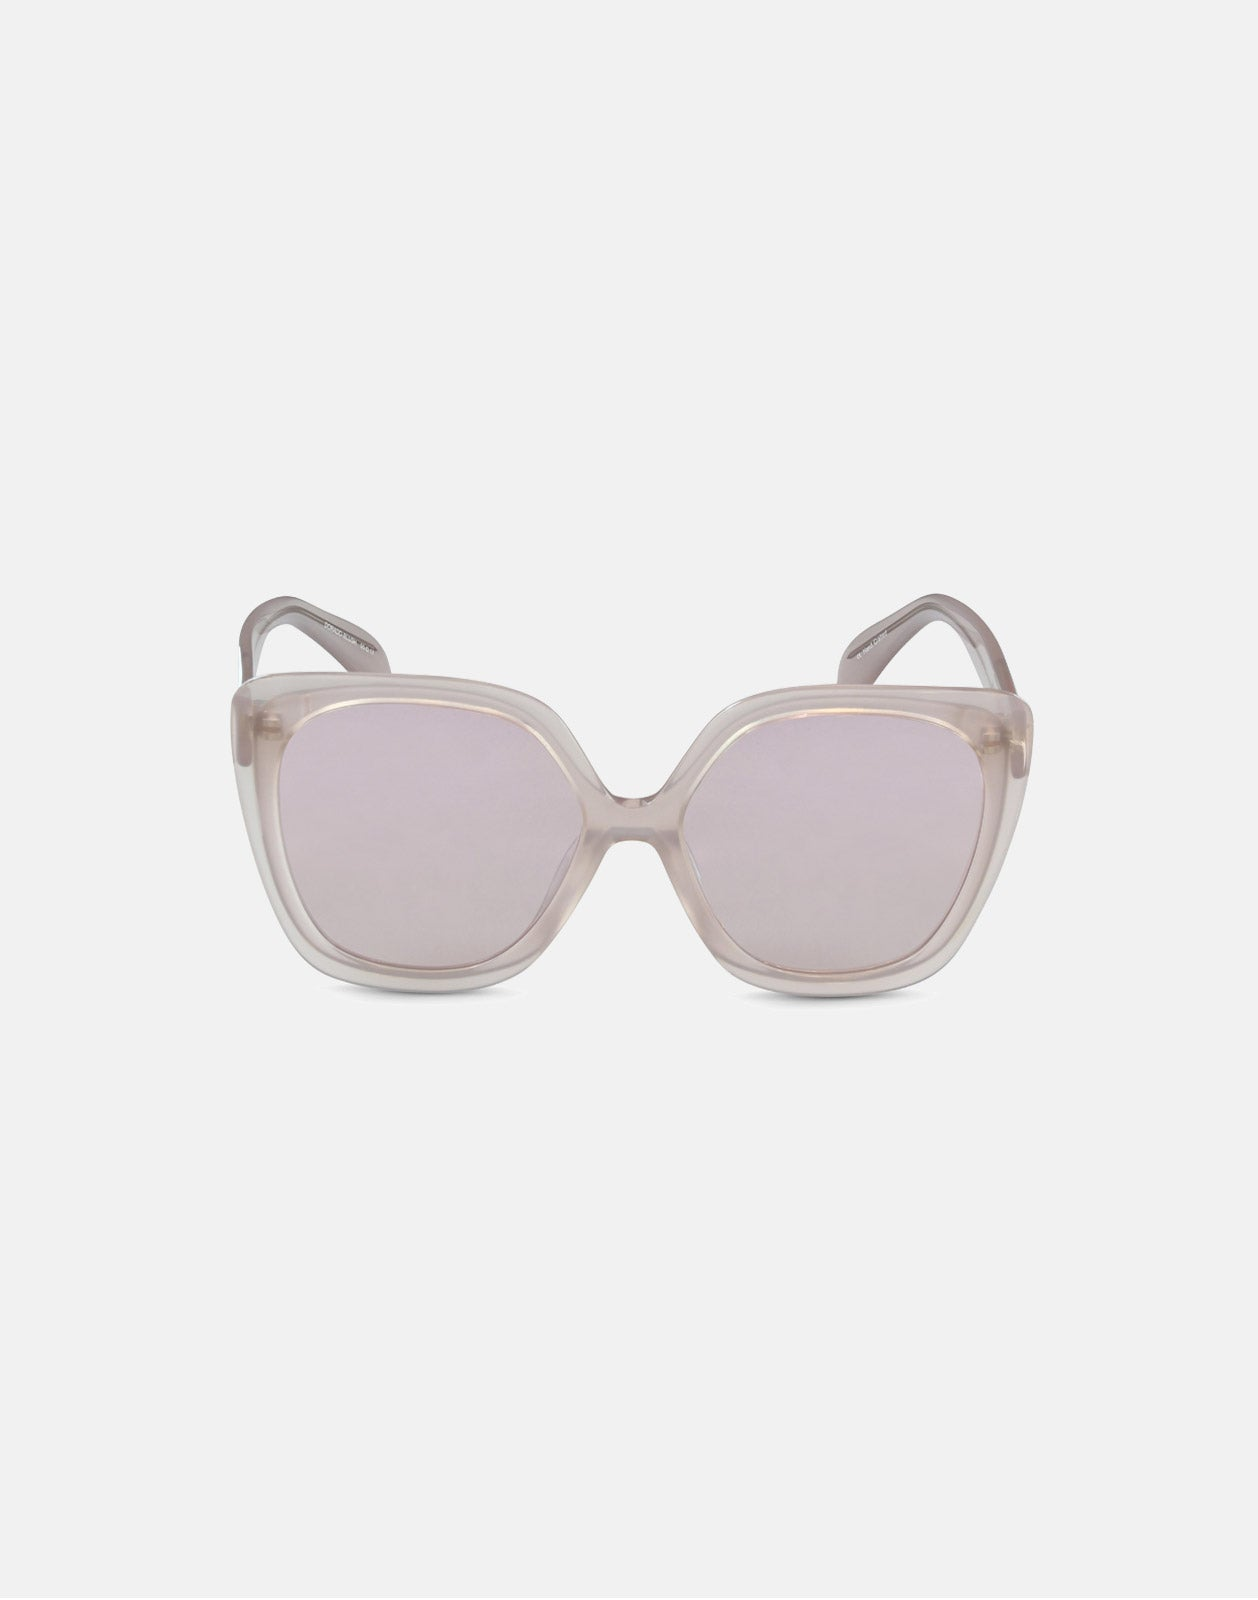 Dorado Blush Sunglasses front view